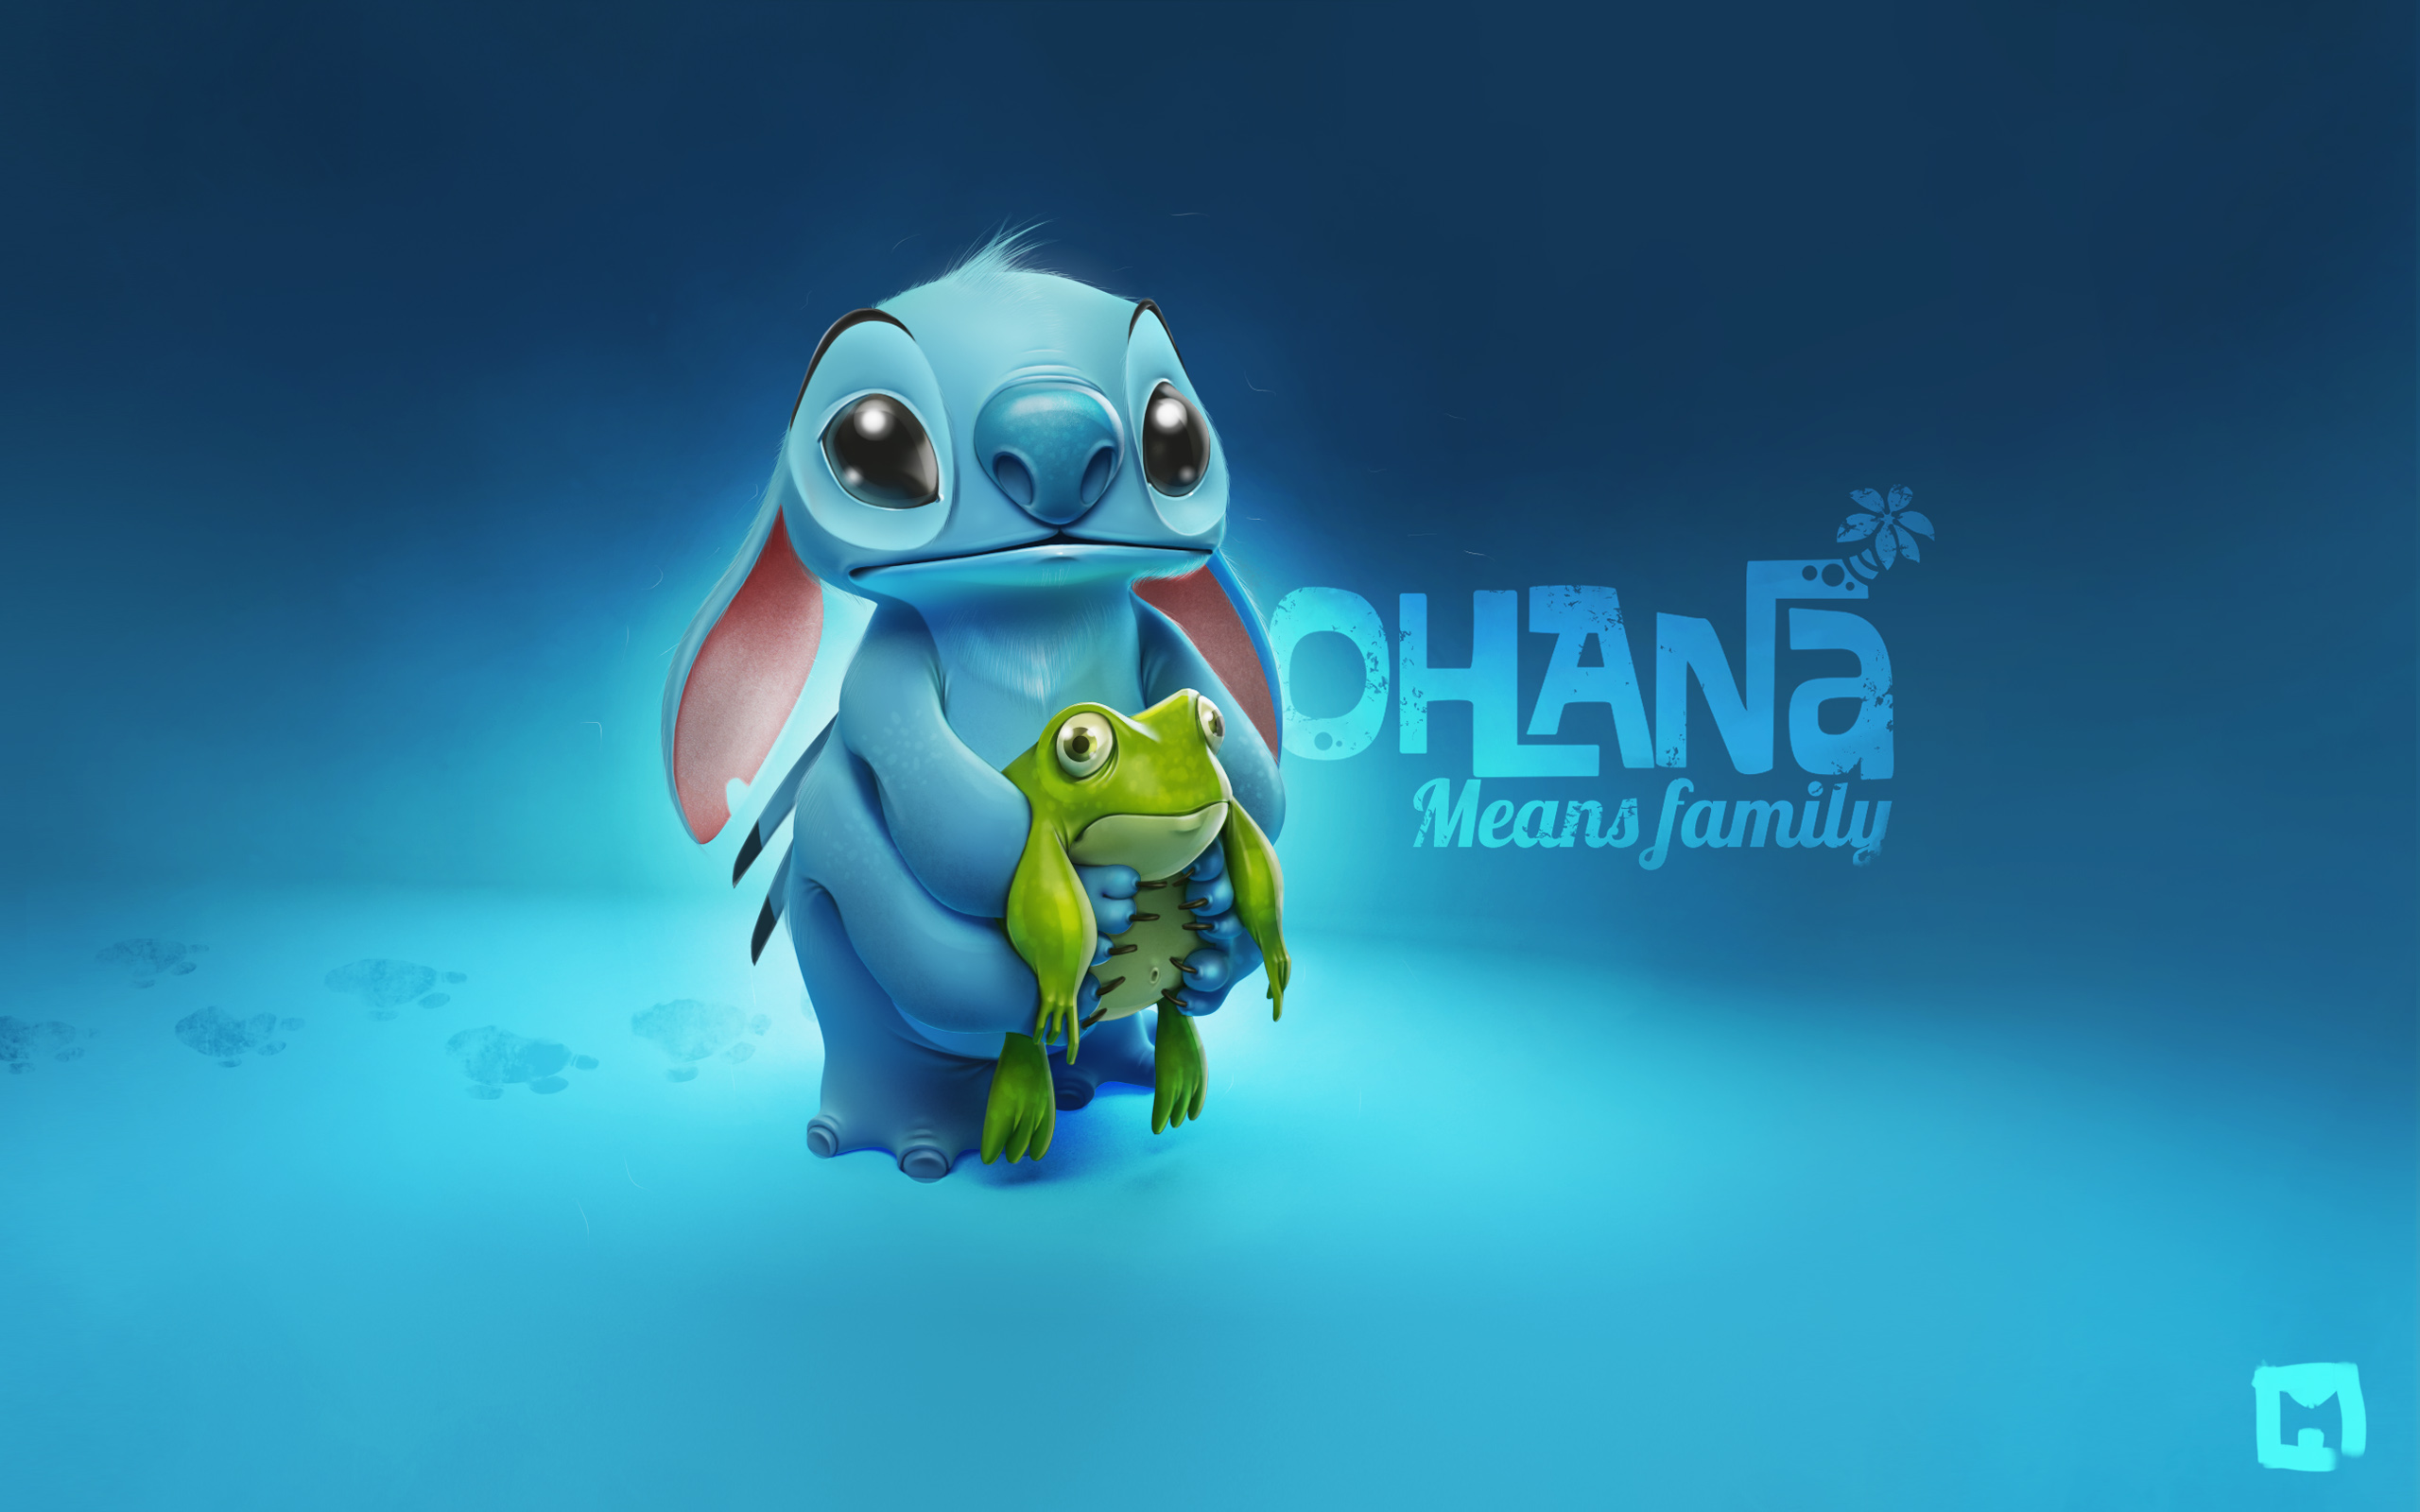 Stitch wallpaper cute adorable creature alien Stitch blue wallpapers 2560x1600